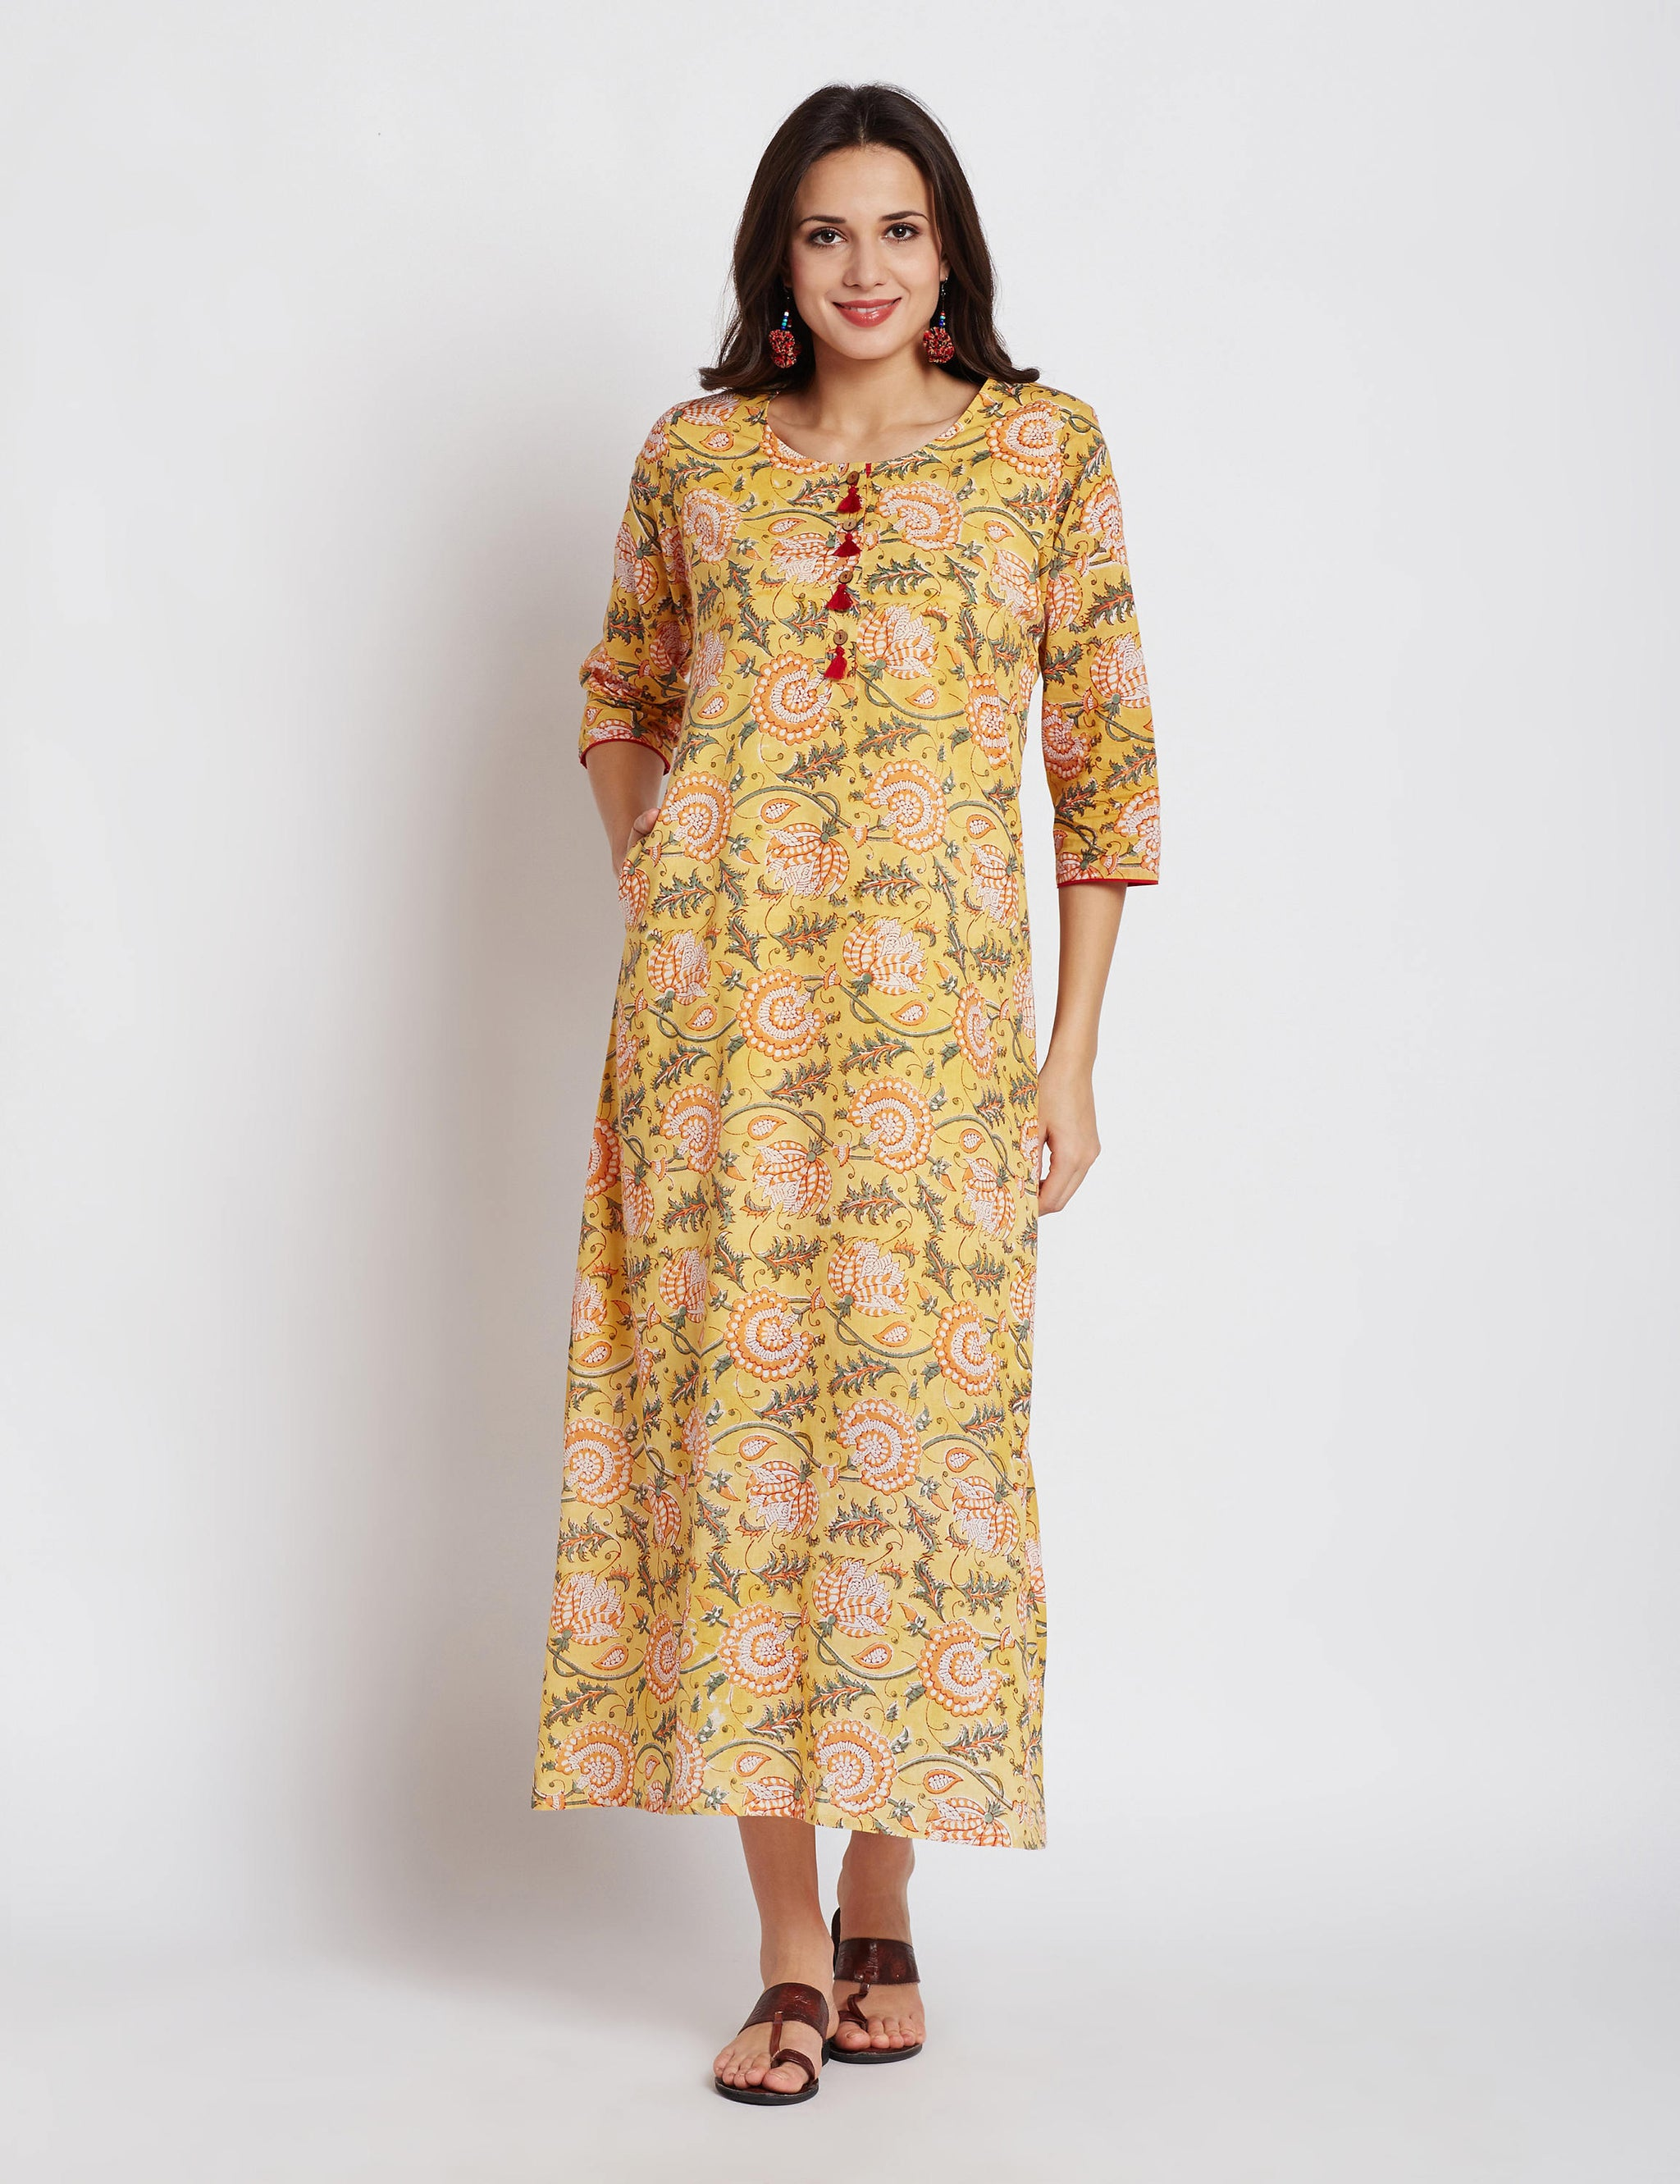 Hand block yellow floral printed one piece long dress